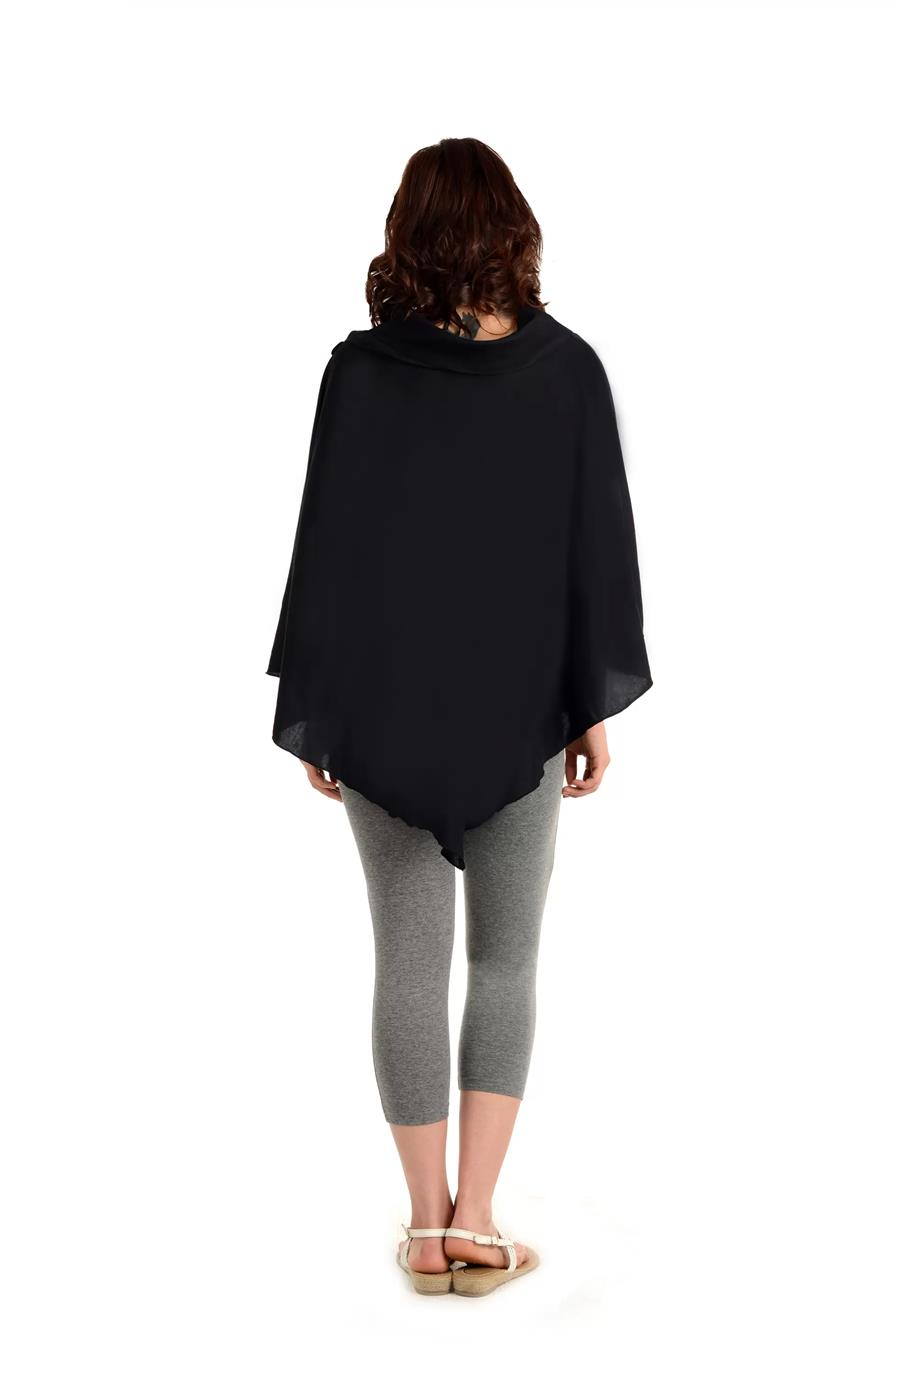 Innovative presents Poncho Style Top